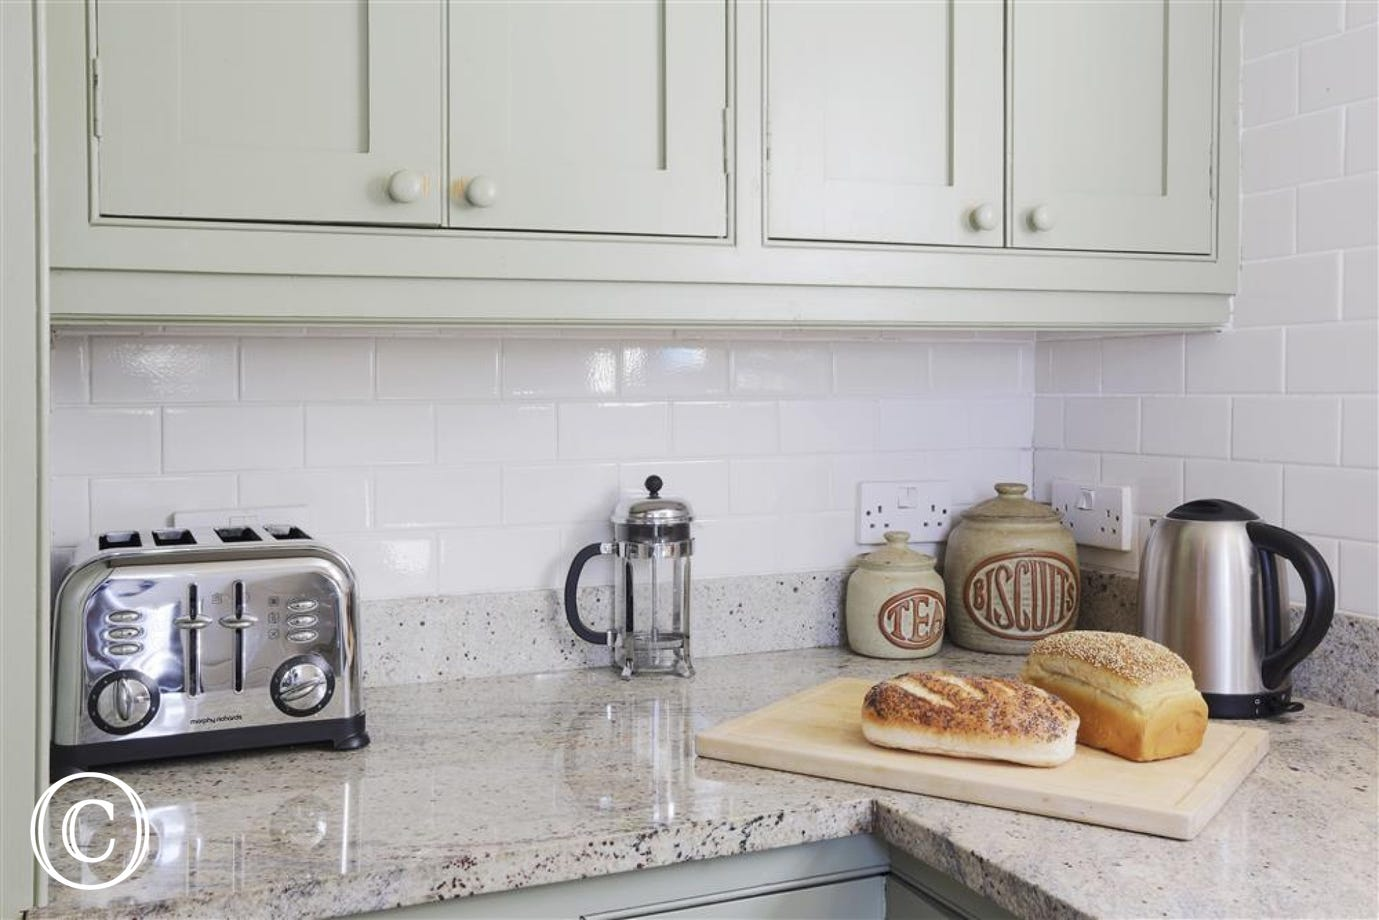 Kitchen Worktops with small appliances